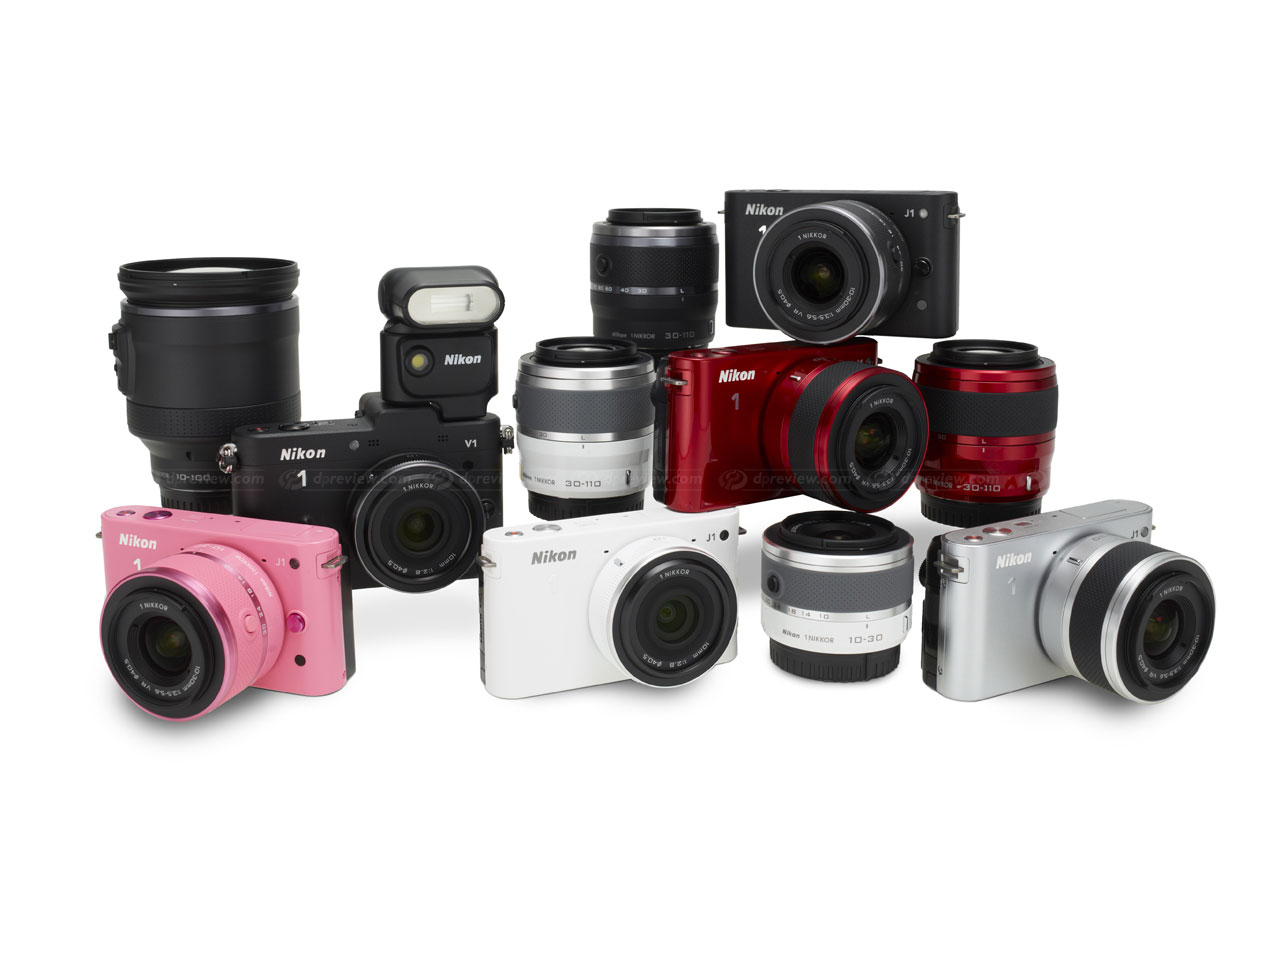 Opinion Does The Arrival Of Eos M3 Mean Canon Is Finally Taking Kit Ii Ef M18 55 Stm Ampamp M55 200 Nikons 1 System At Launch In 2011 Consisted A Beginner Friendly J1 Model And More Enthusiast Aimed V1 With Built Viewfinder